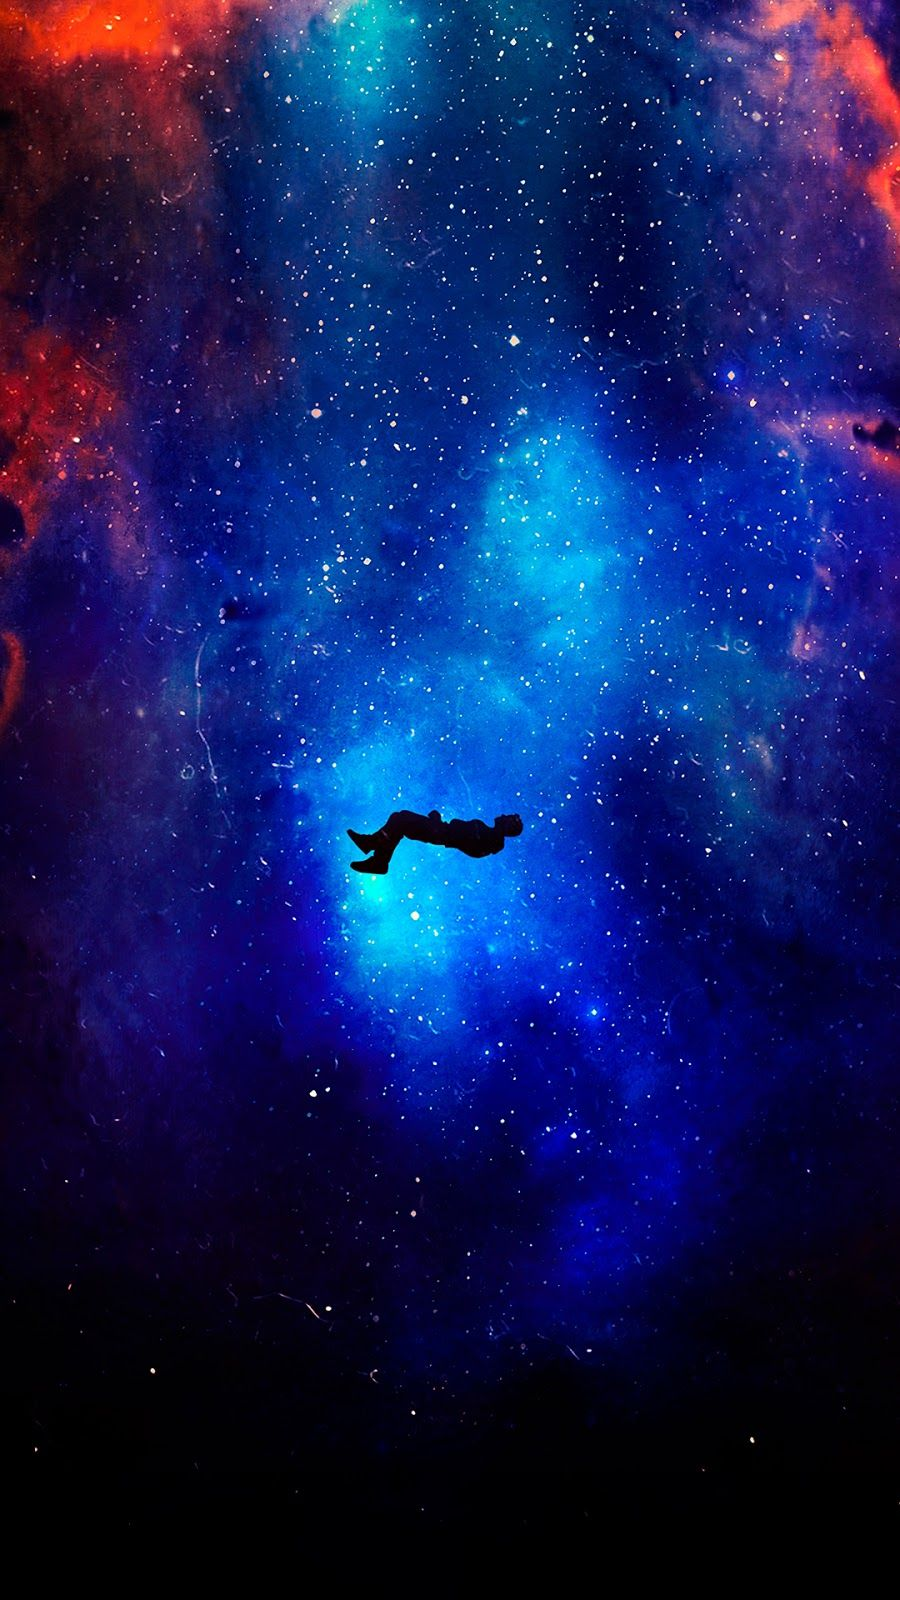 Falling In The Universe Wallpaper Iphone Android Background Followme Space Iphone Wallpaper Wallpaper Space Art Wallpaper